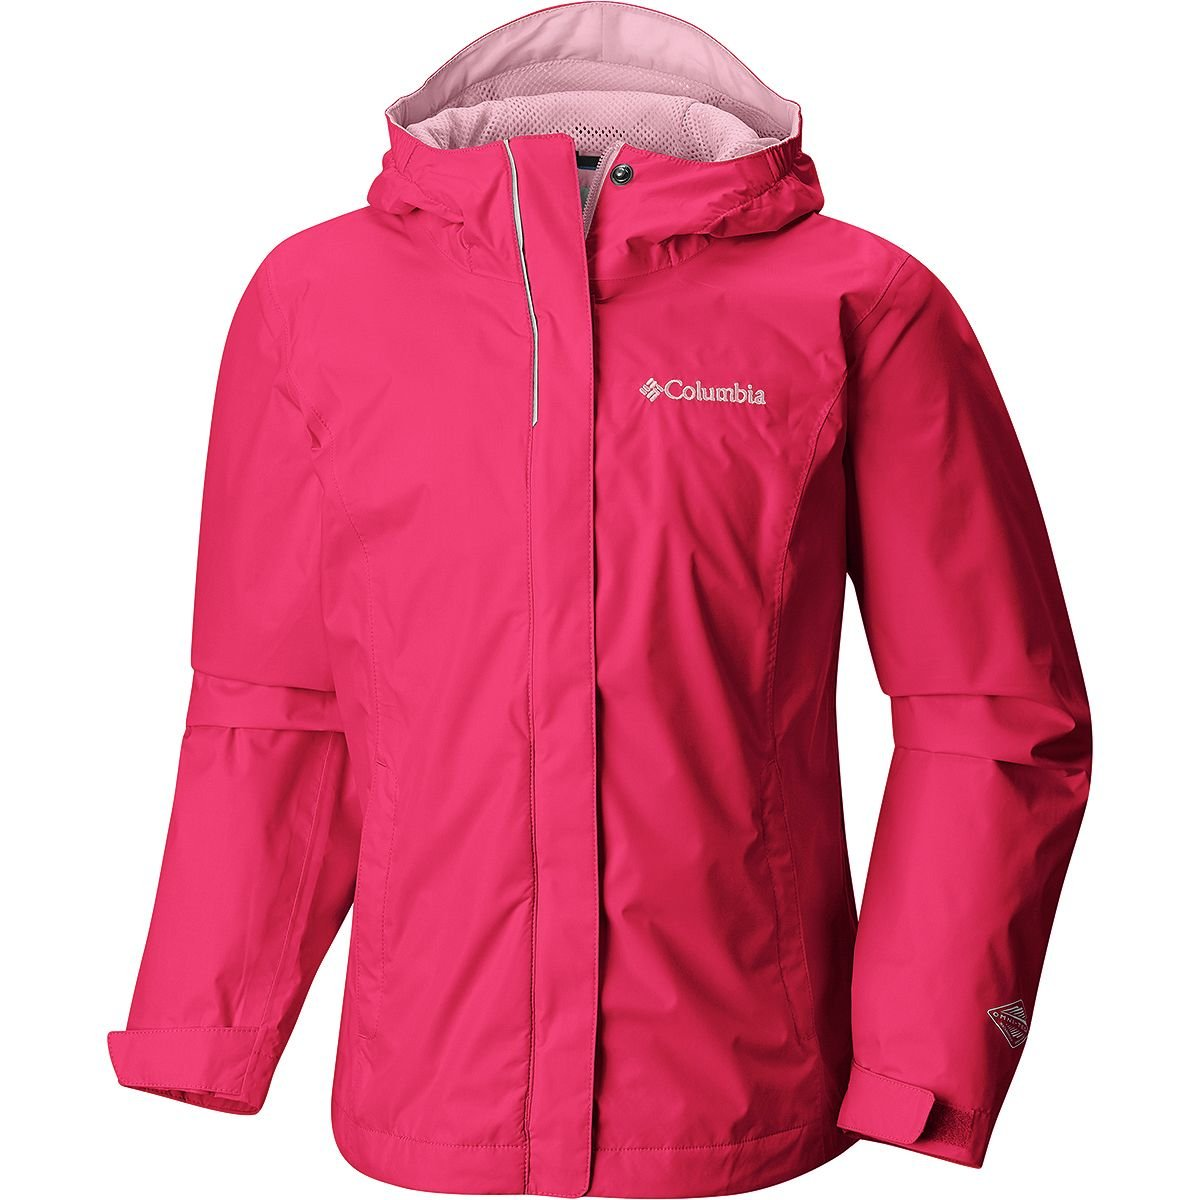 Columbia Big Girls' Arcadia Jacket, Punch Pink, M